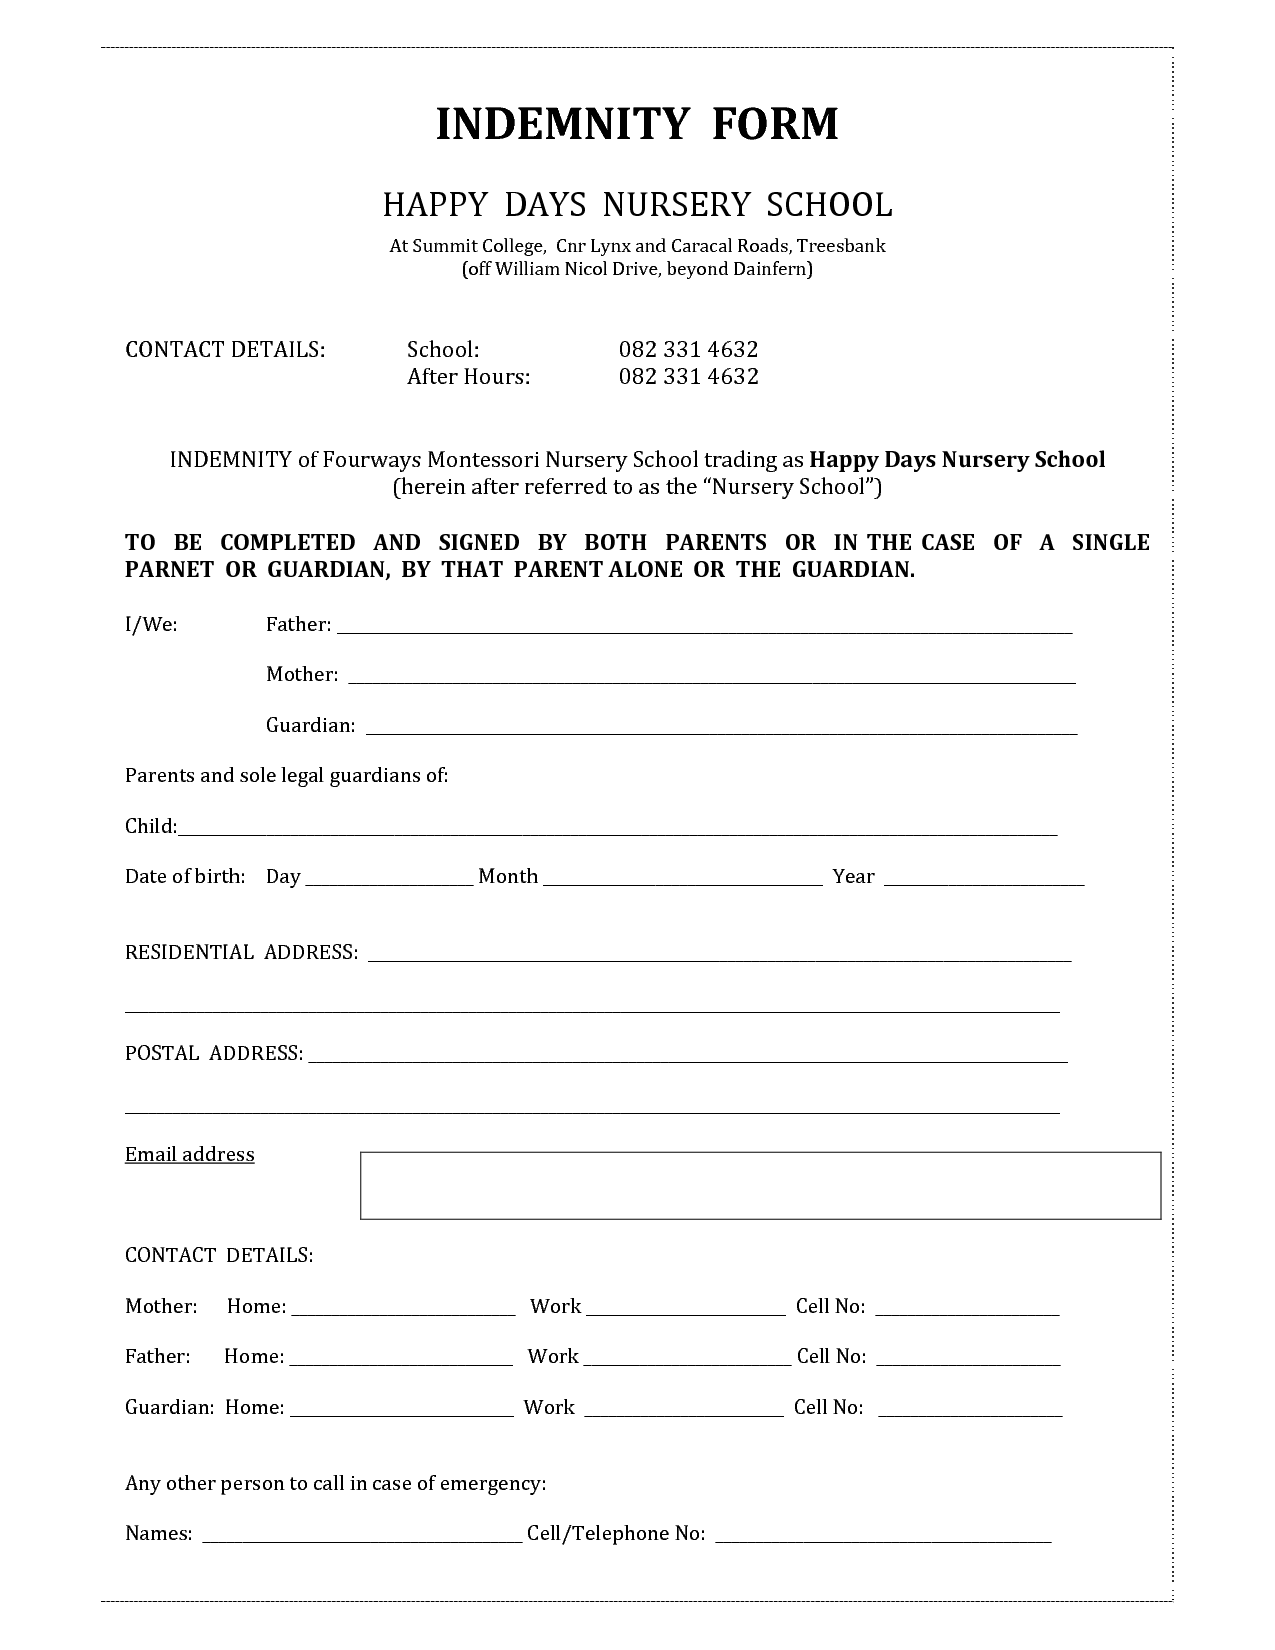 Superior Beauty Indemnity Form Template   Invitation Templates   Indemnity Form To Indemnity Template